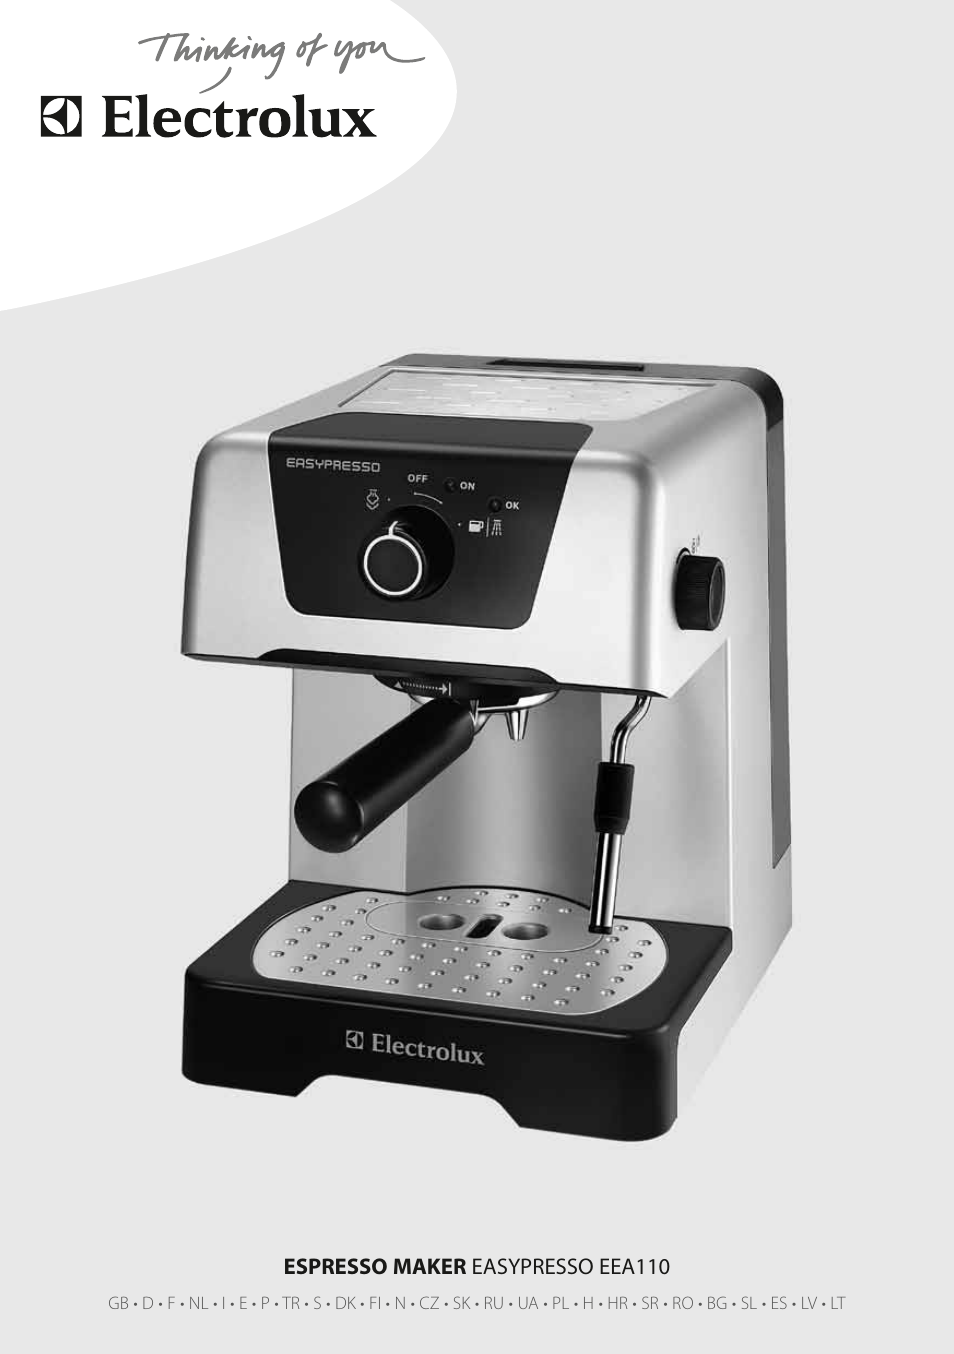 Electrolux Coffee Maker Manual : Electrolux EEA110 User Manual 88 pages